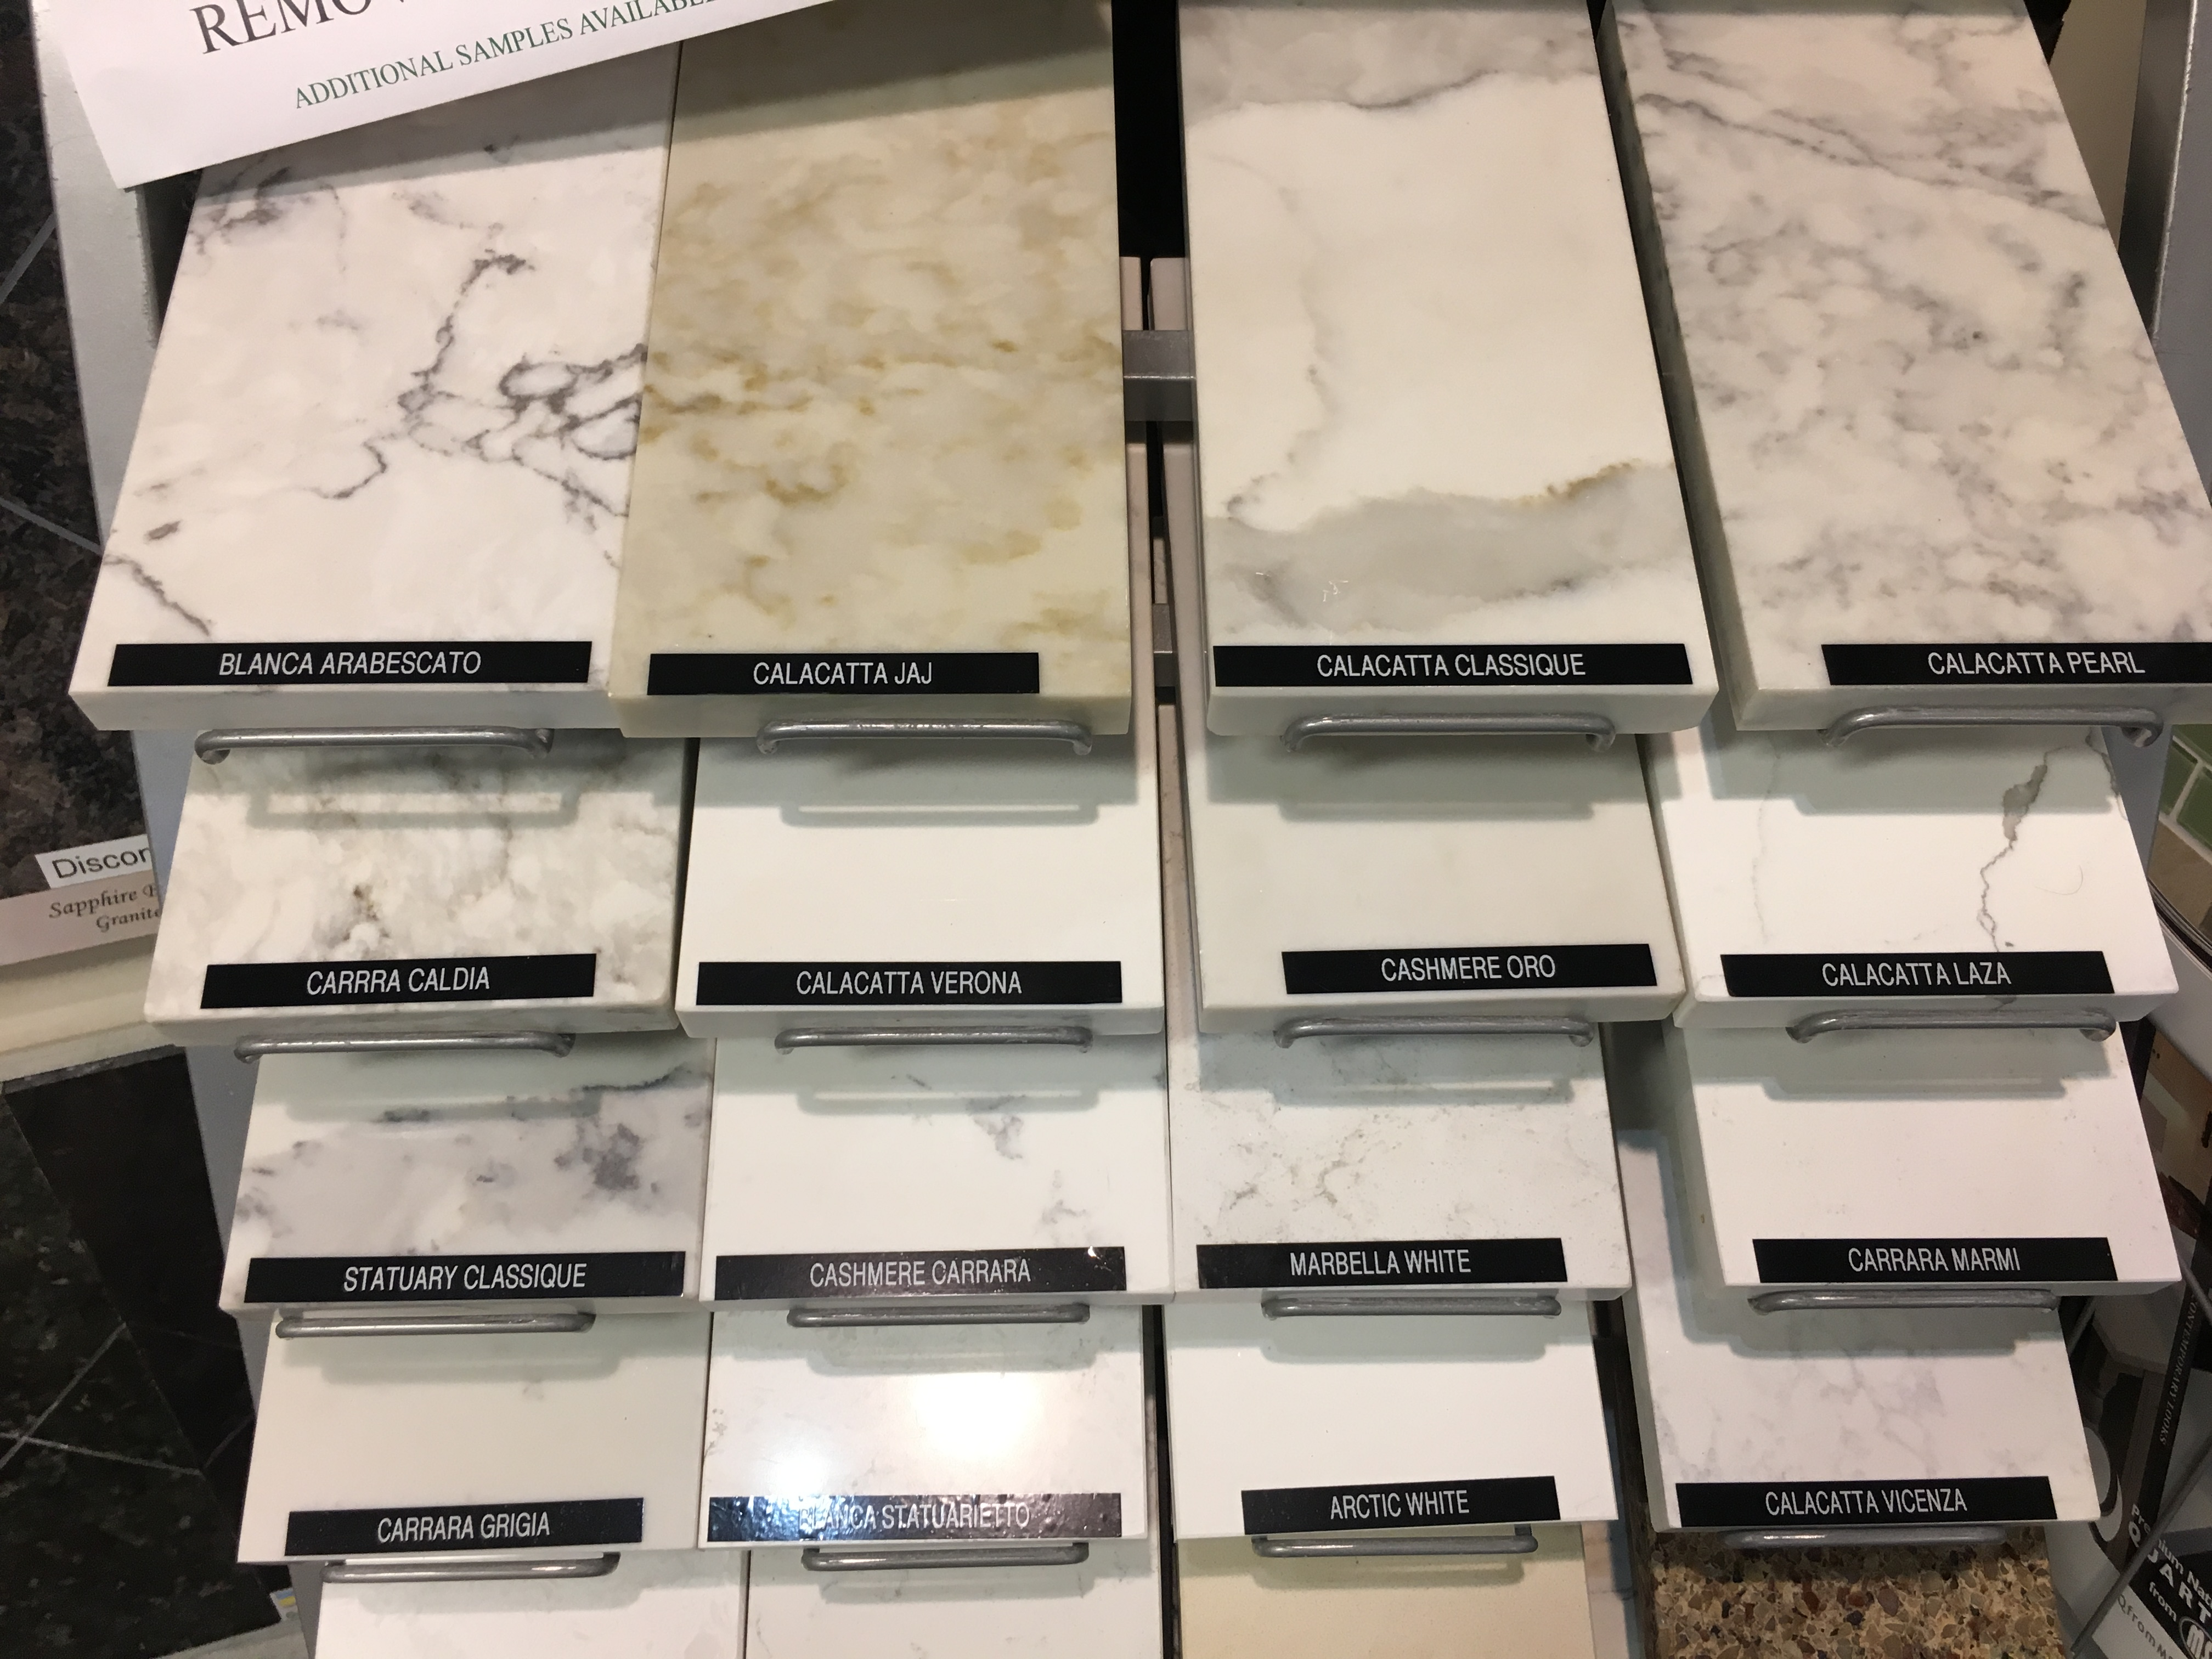 Marble images